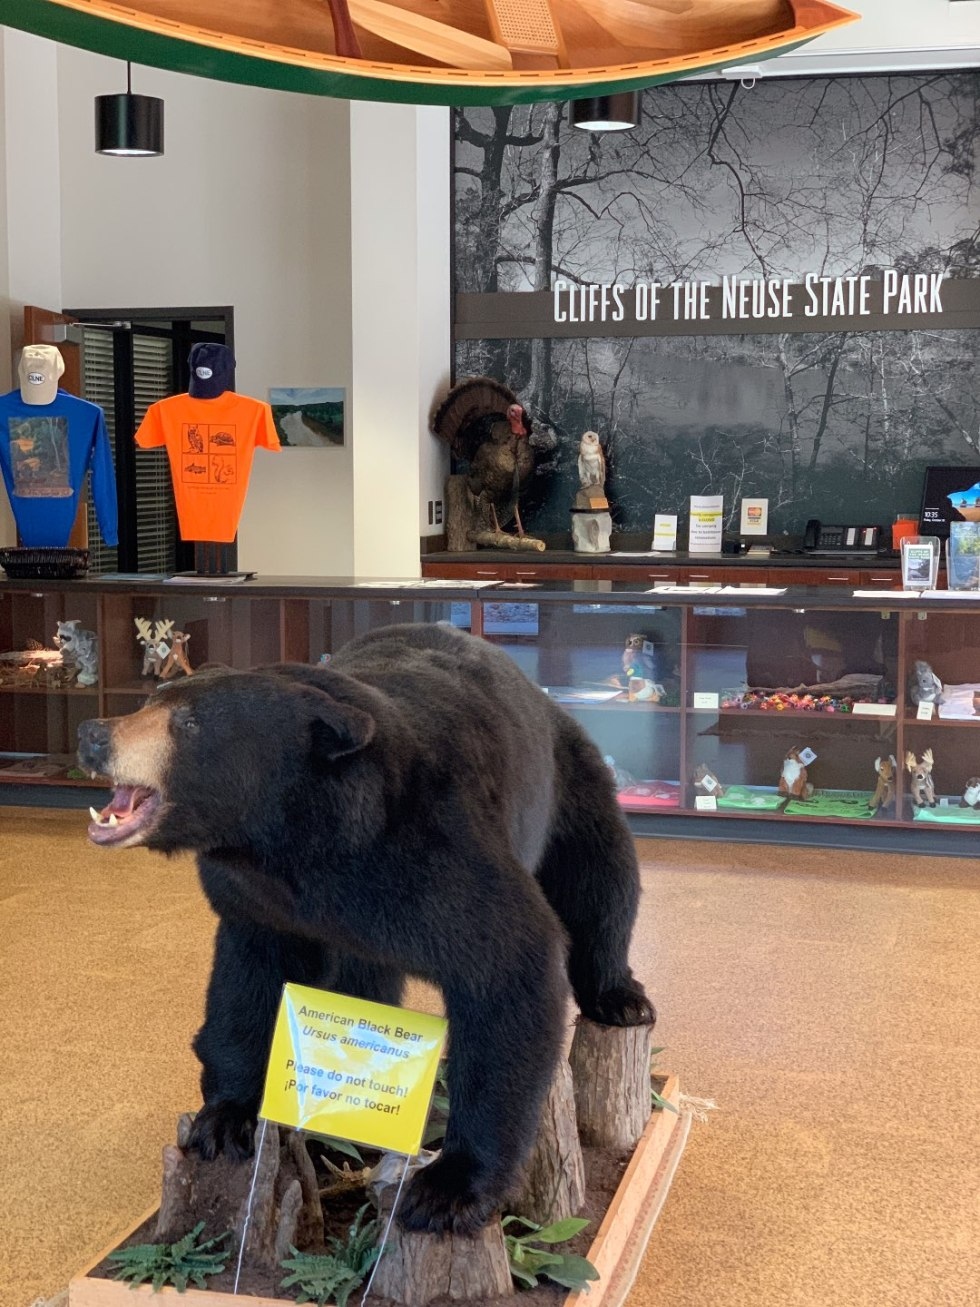 Eastern North Carolina Travel Guide: Top 10 Things to Do in Goldsboro NC - I'm Fixin' To - @mbg0112 | Eastern North Carolina Travel Guide: Top 10 Things to Do in Goldsboro NC by popular North Carolina blog, I'm Fixin' To: image of Neuse state park visitor center.